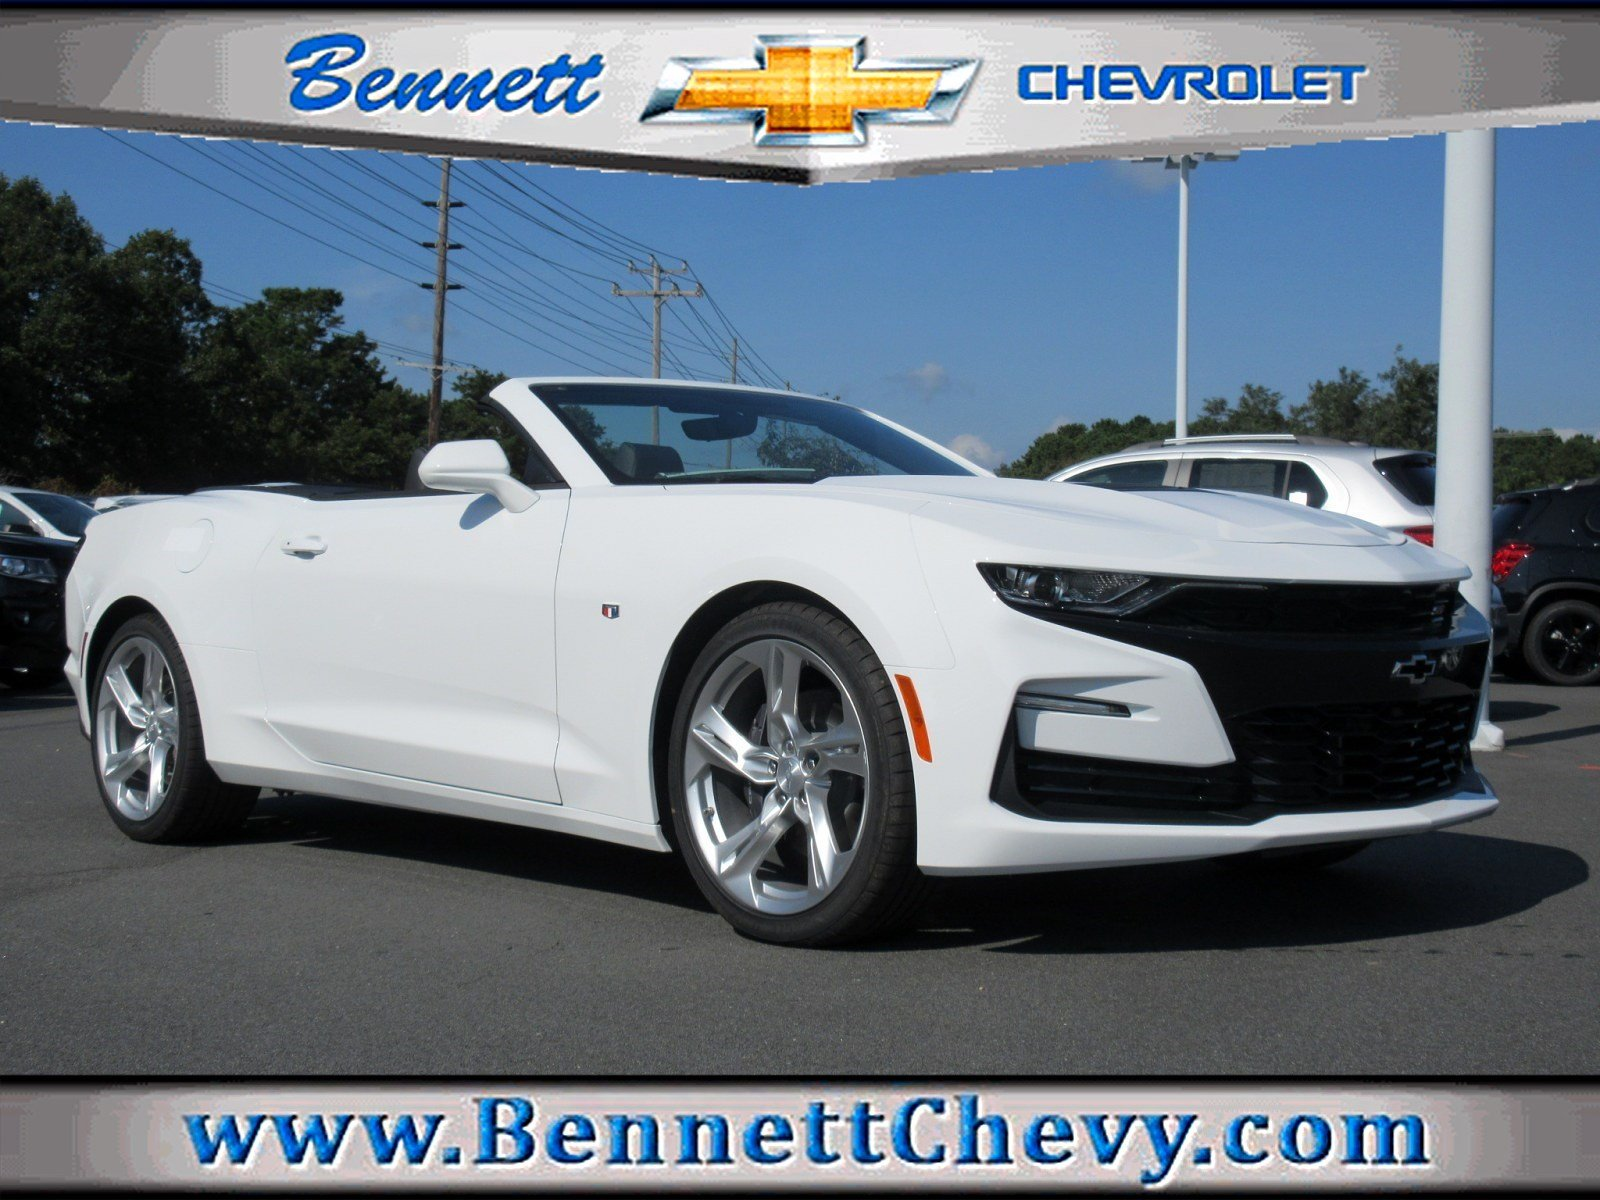 New 2019 Chevrolet Camaro Ss Convertible In Egg Harbor Township